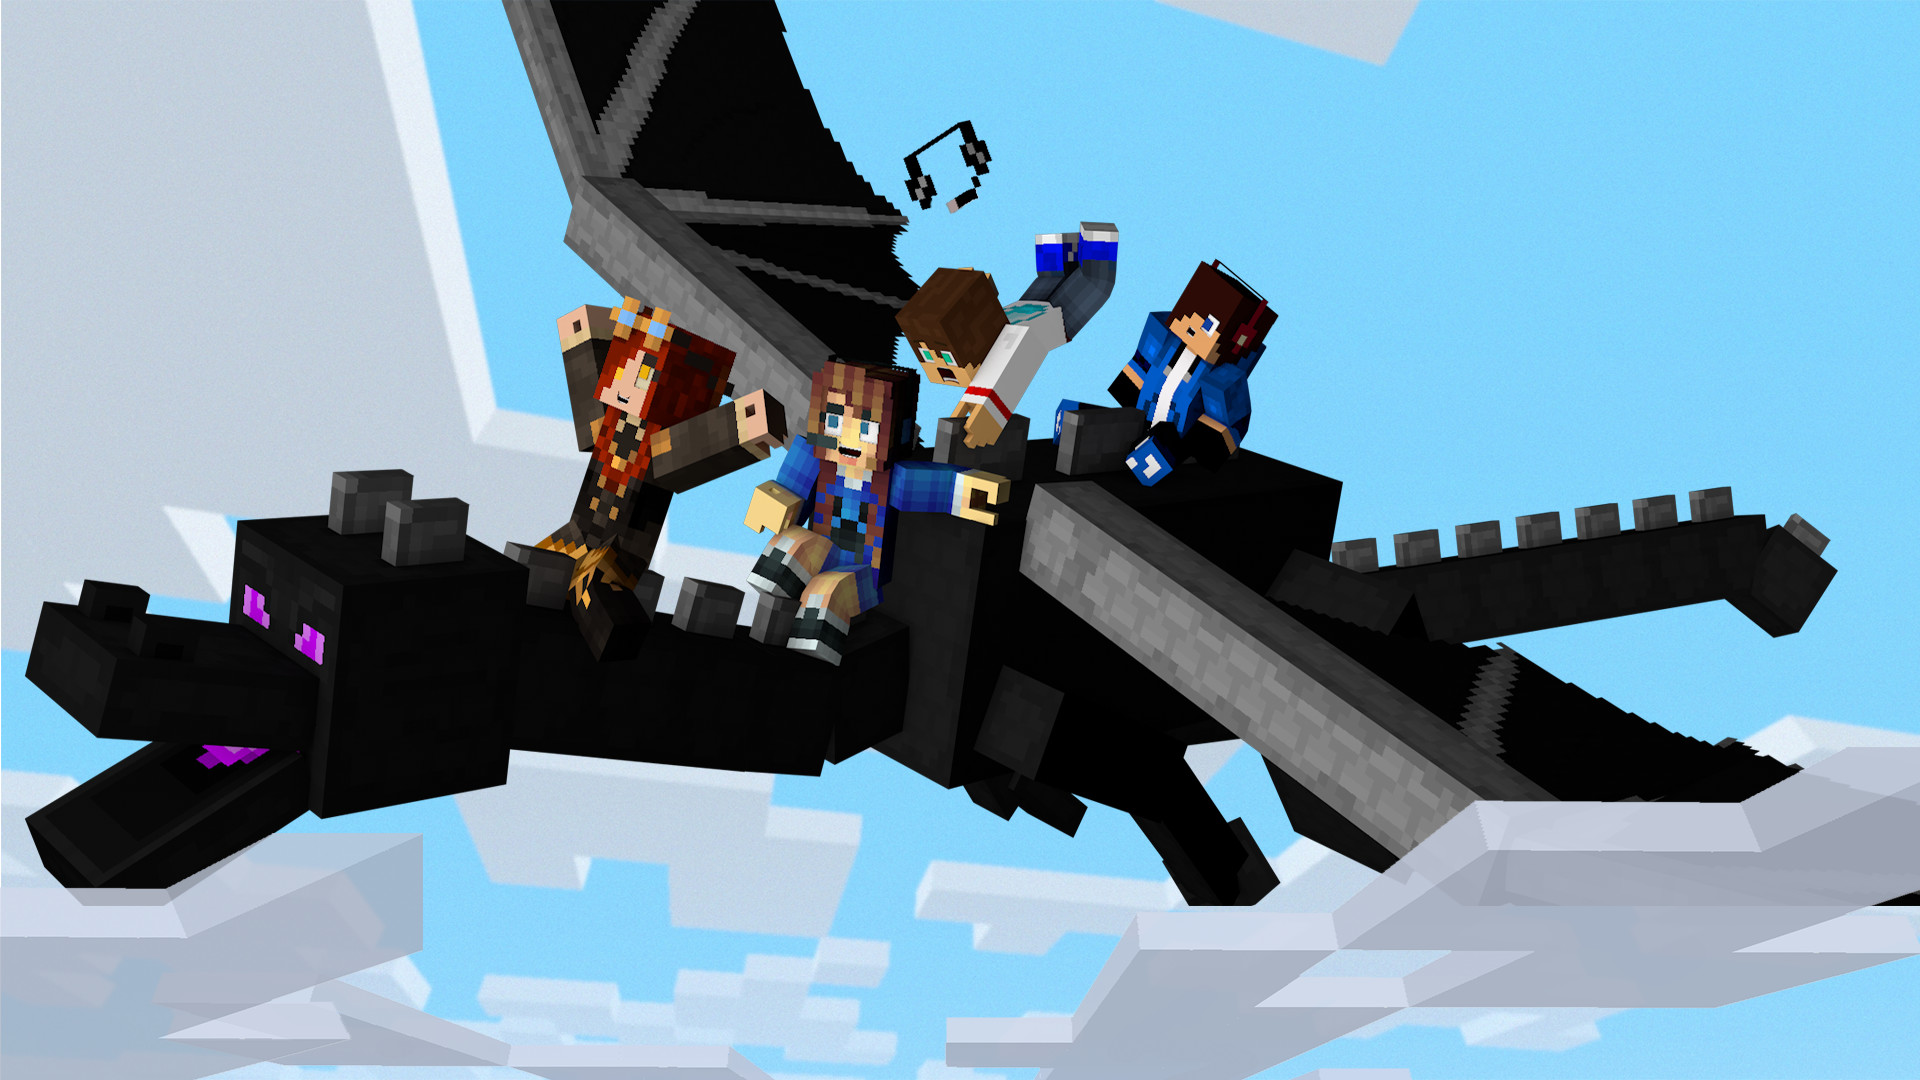 Res: 1920x1080, Ender Dragon Ride by brodielawrence Ender Dragon Ride by brodielawrence